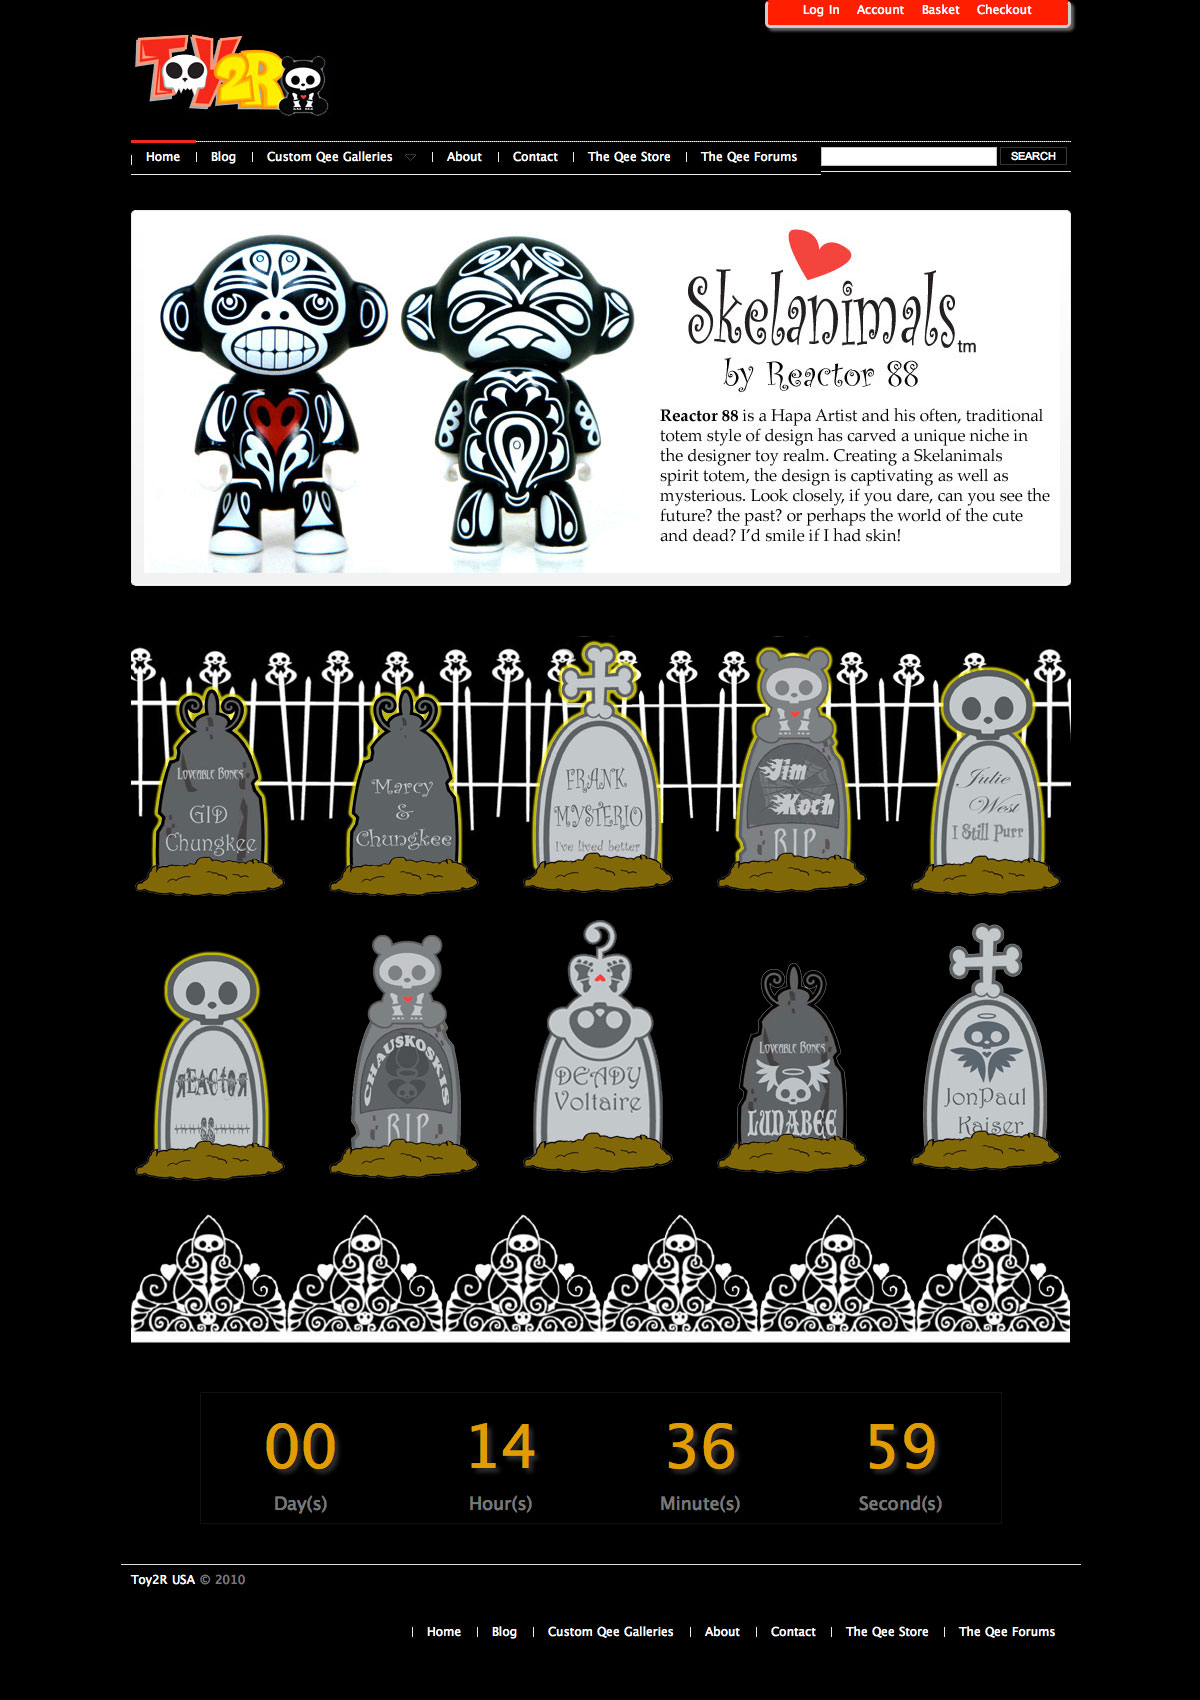 Reactor-88's Spirit Totem Official Reveal on Toy2r Website